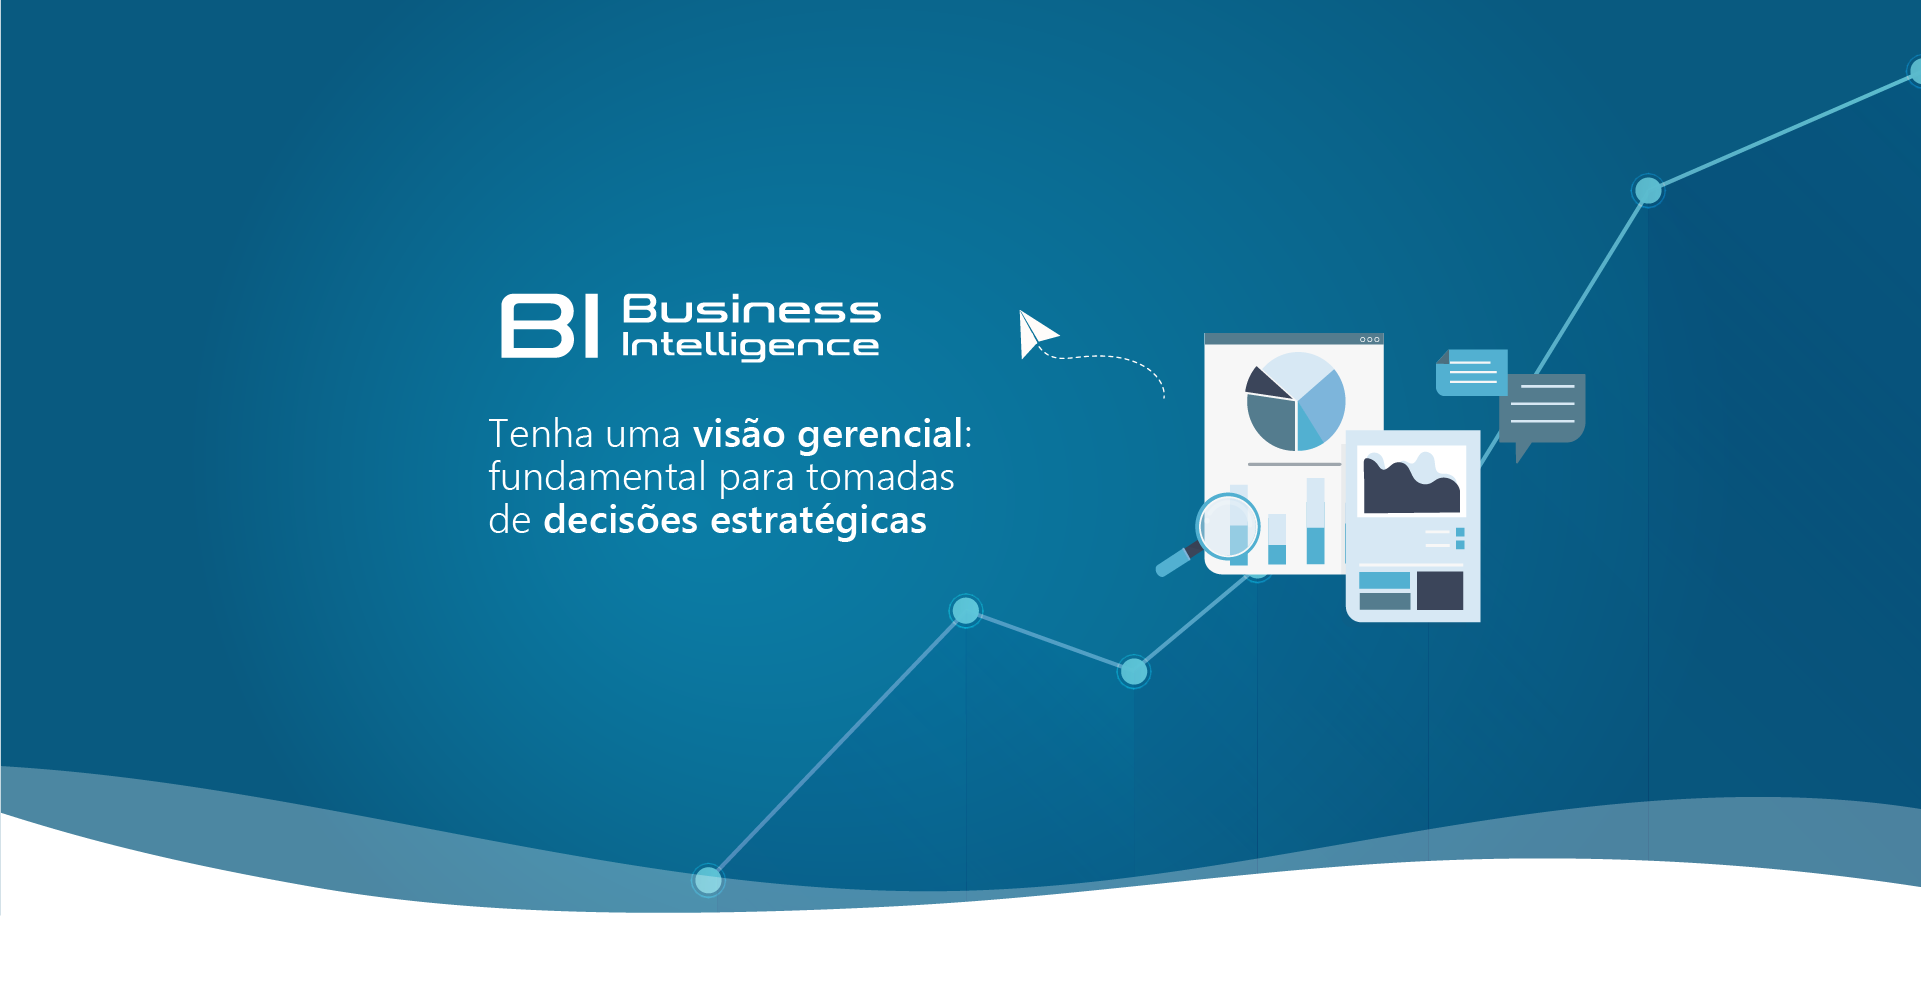 business intelligence propriedade intelectual